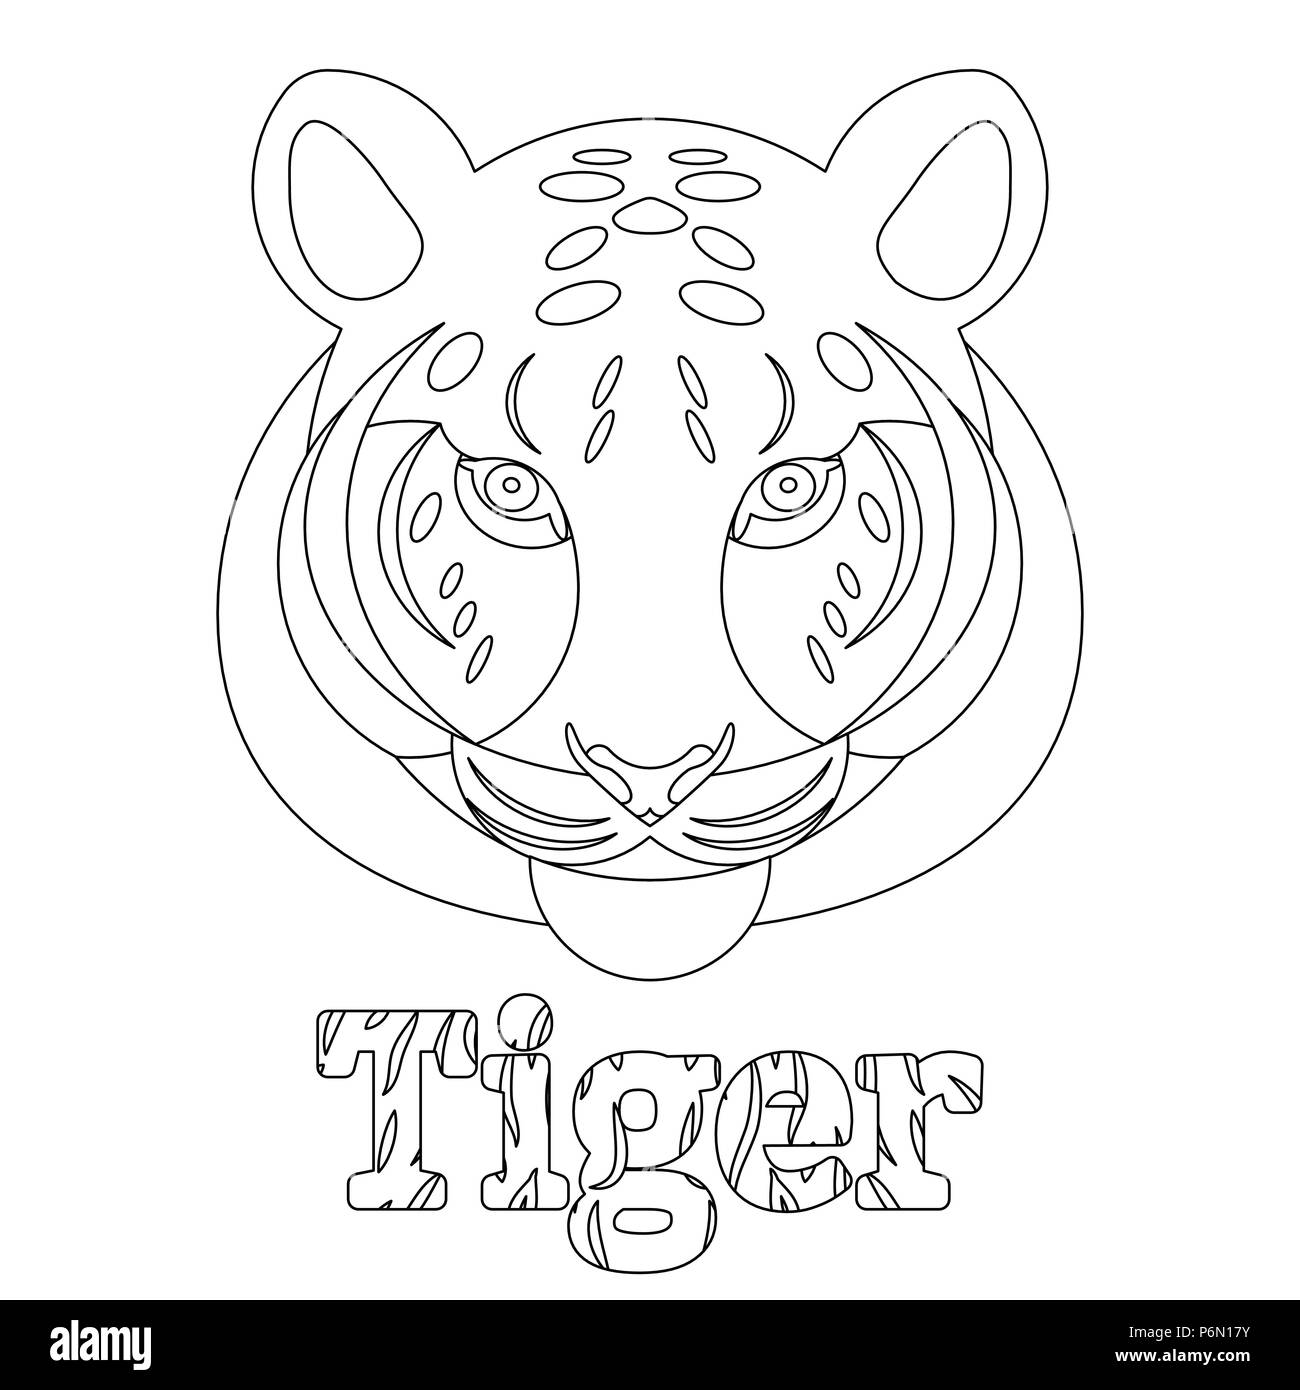 Tiger. Coloring page for kids. Wild mammal is an animal. Linear style. Name of the animal with its fur texture - Stock Image